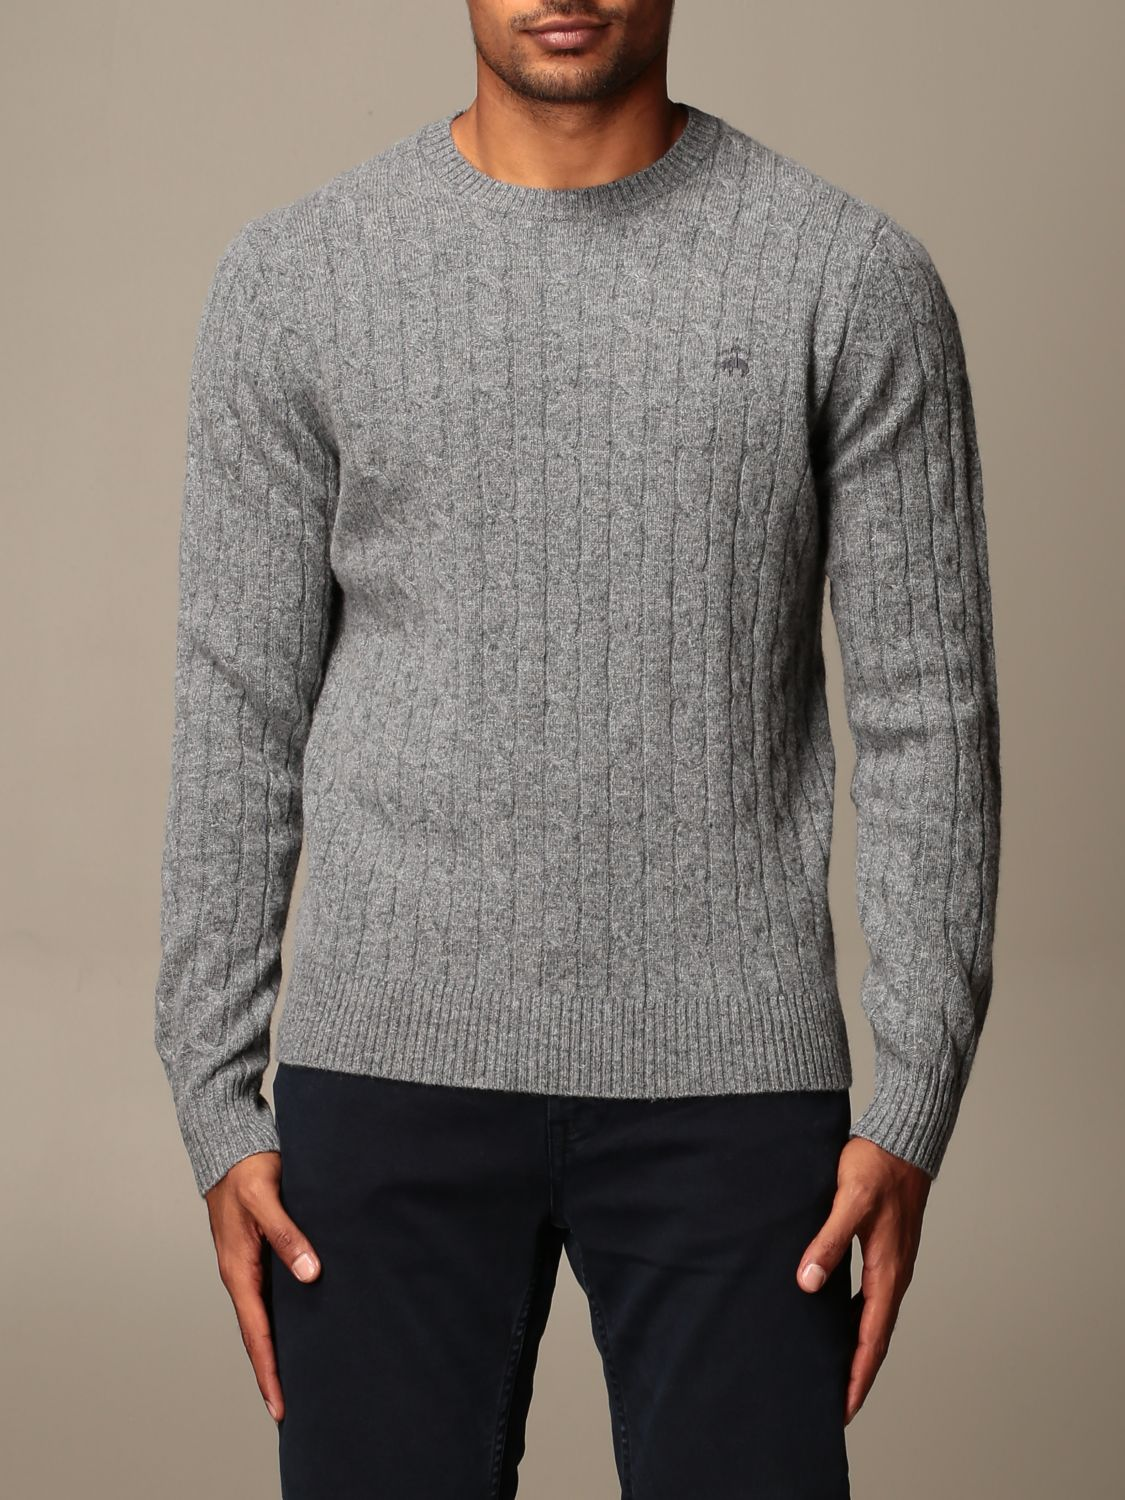 Jersey Brooks Brothers: Jersey hombre Brooks Brothers gris 1